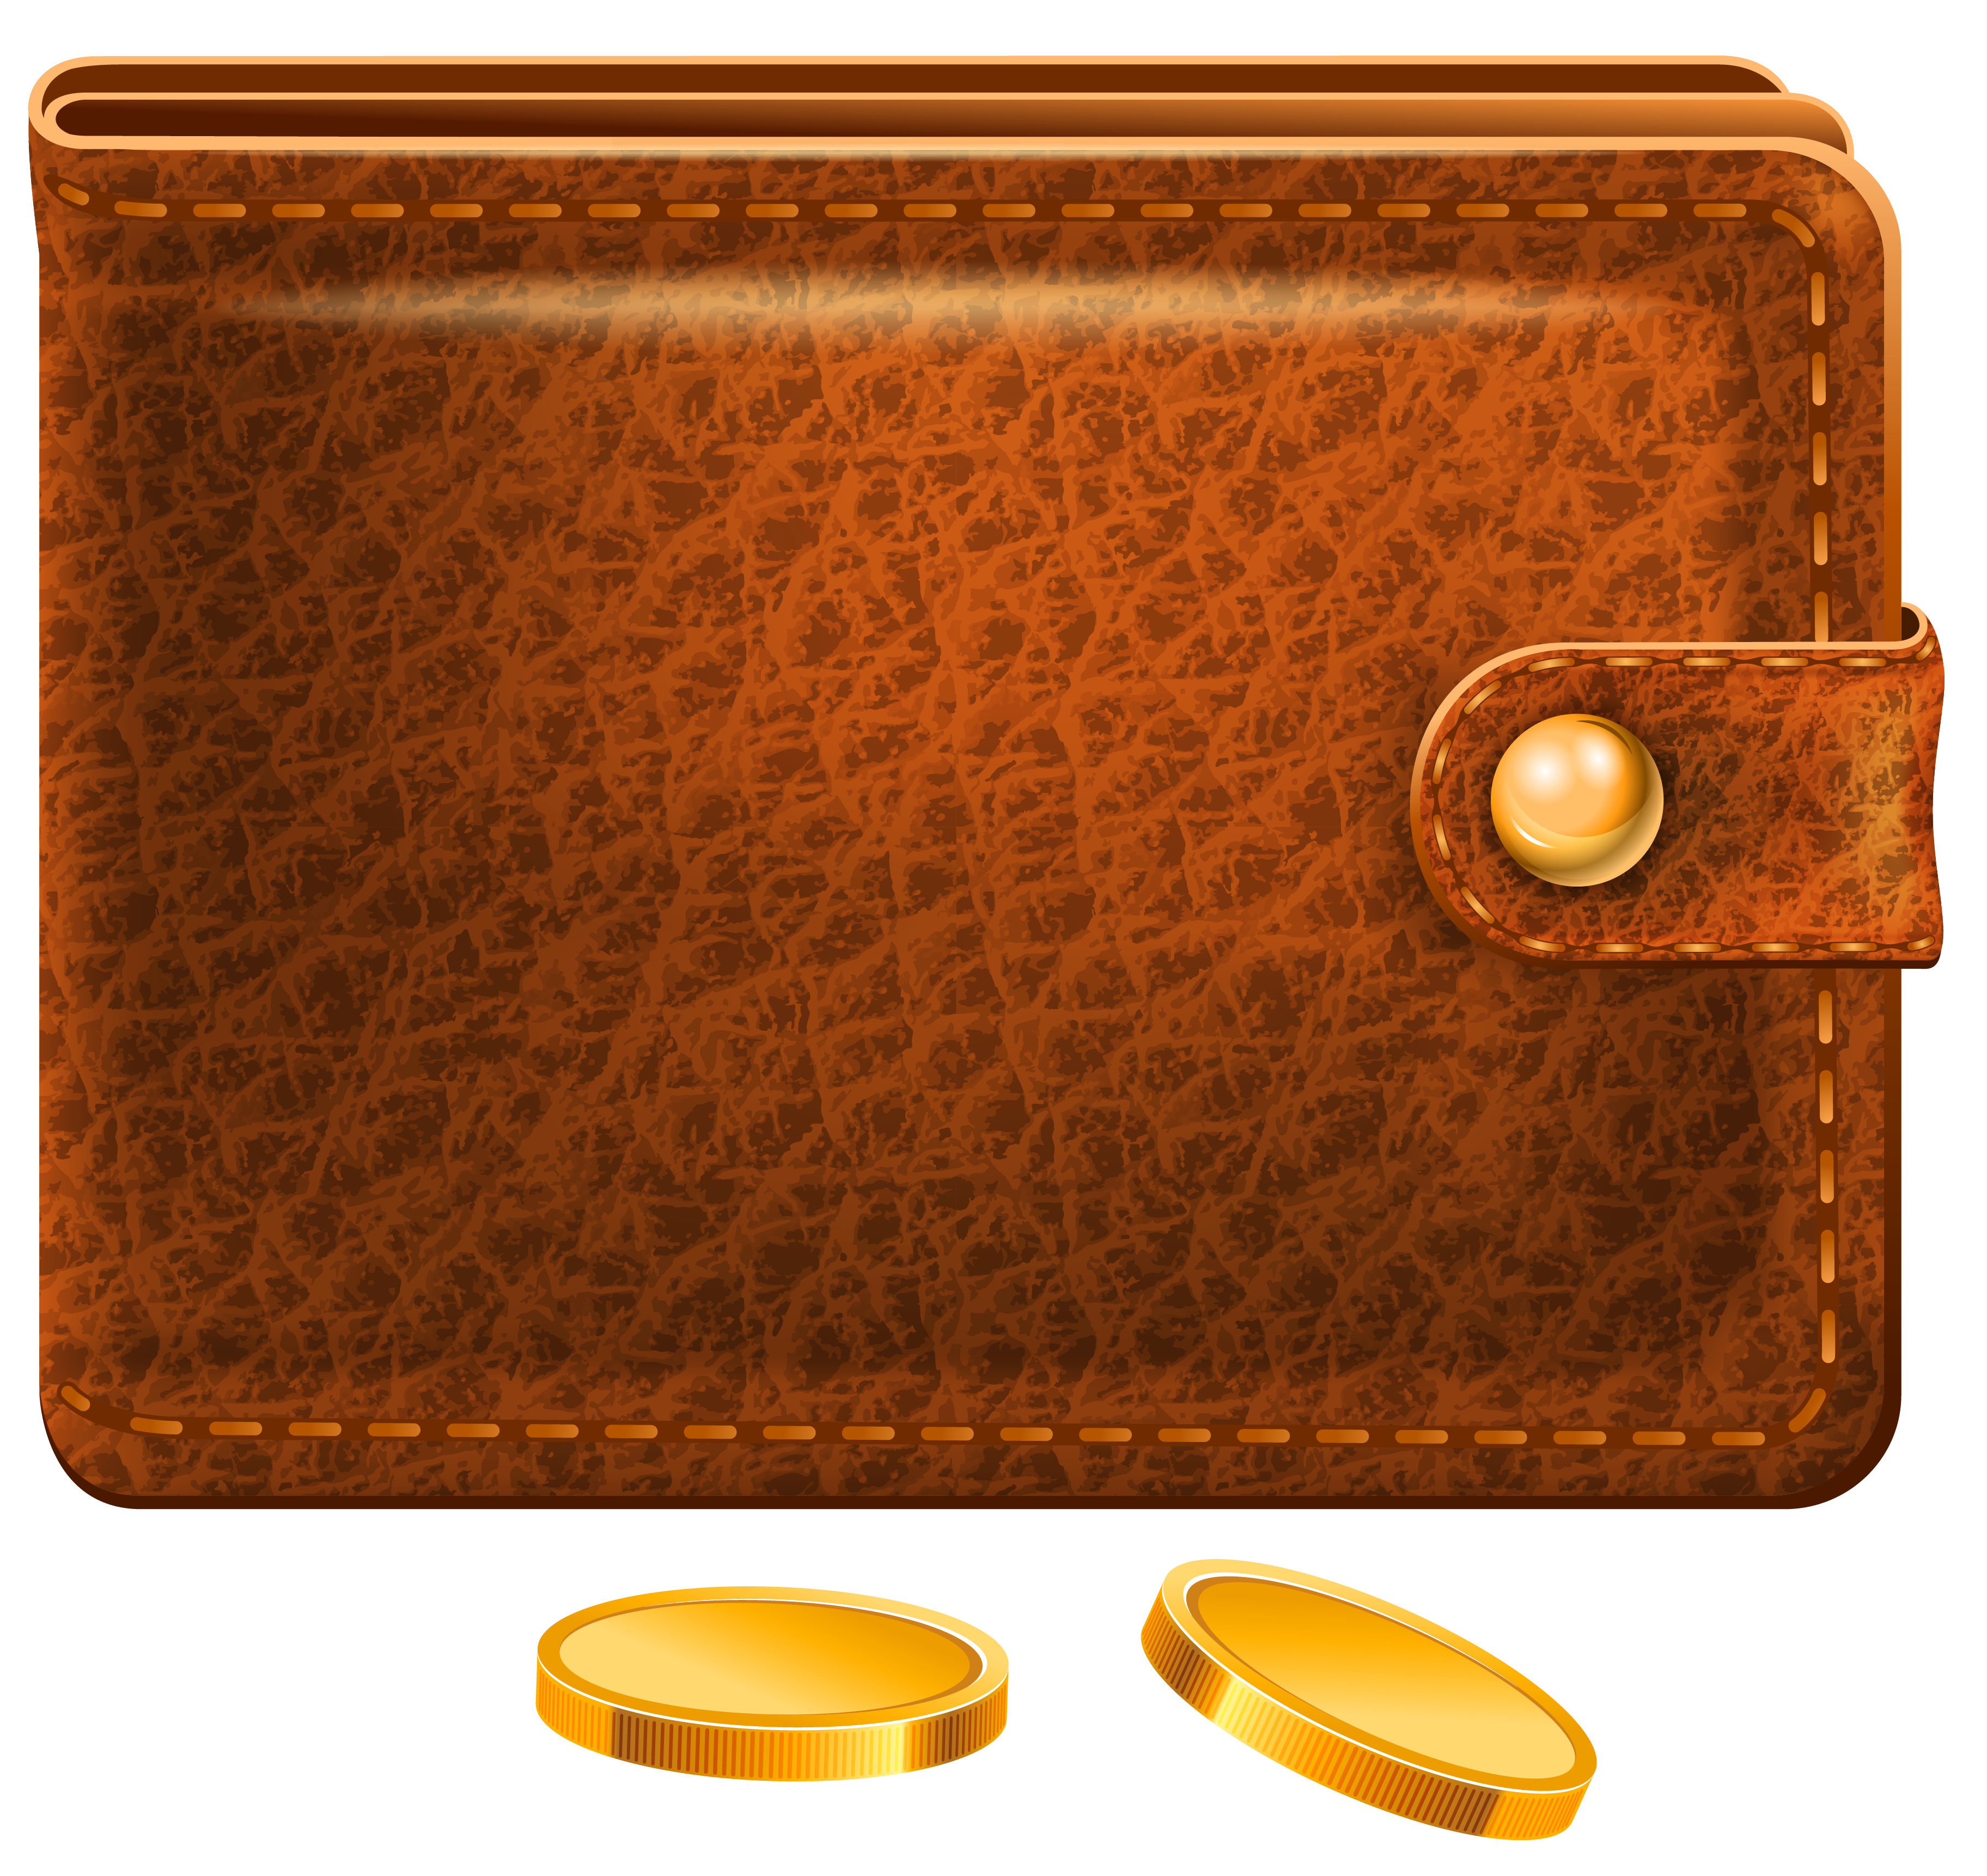 Leather wallet clipart picture free Leather Wallet Cliparts 5 - 3648 X 3445 - Making-The-Web.com picture free